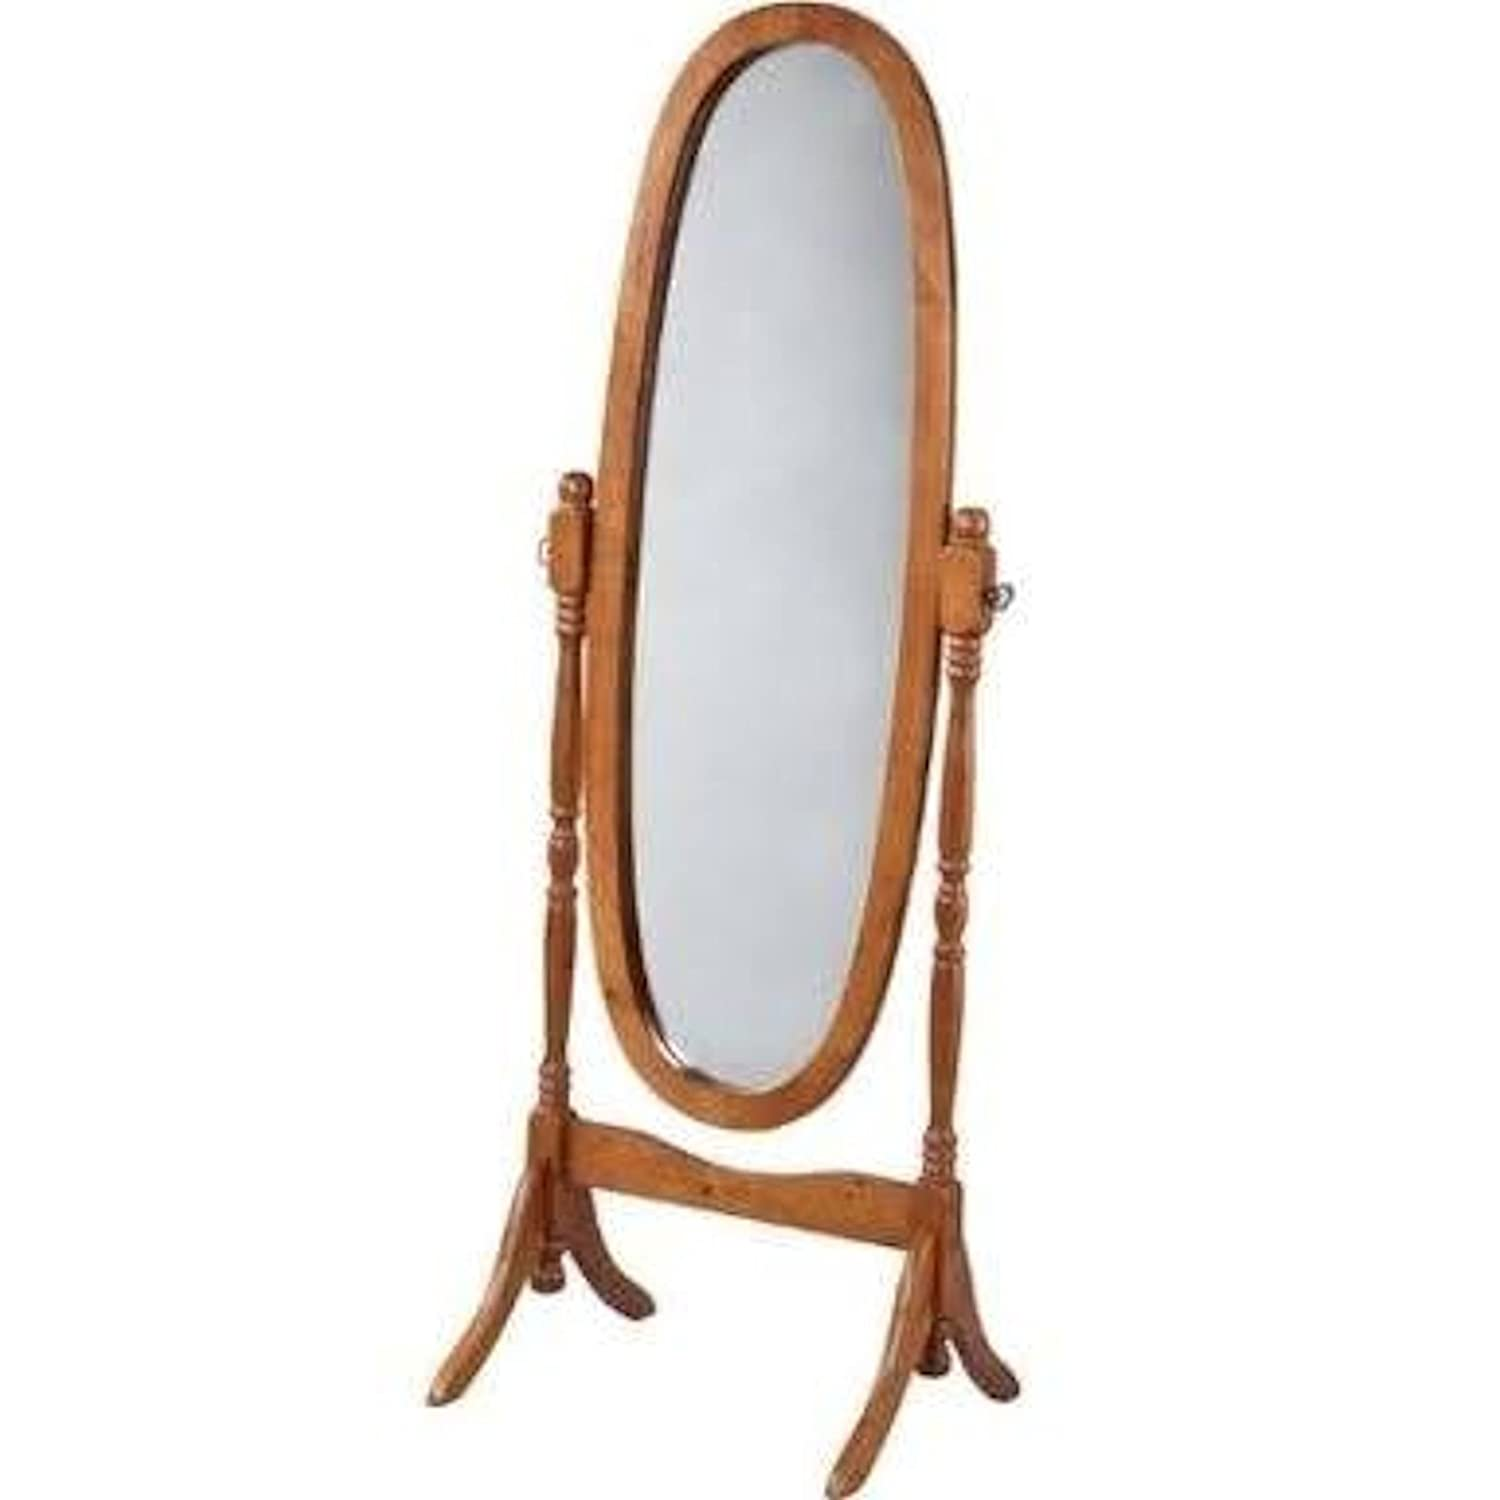 mirror. Amazon.com: Legacy Decor Swivel Full Length Wood Cheval Floor Mirror, Oak New: Home \u0026 Kitchen Mirror M